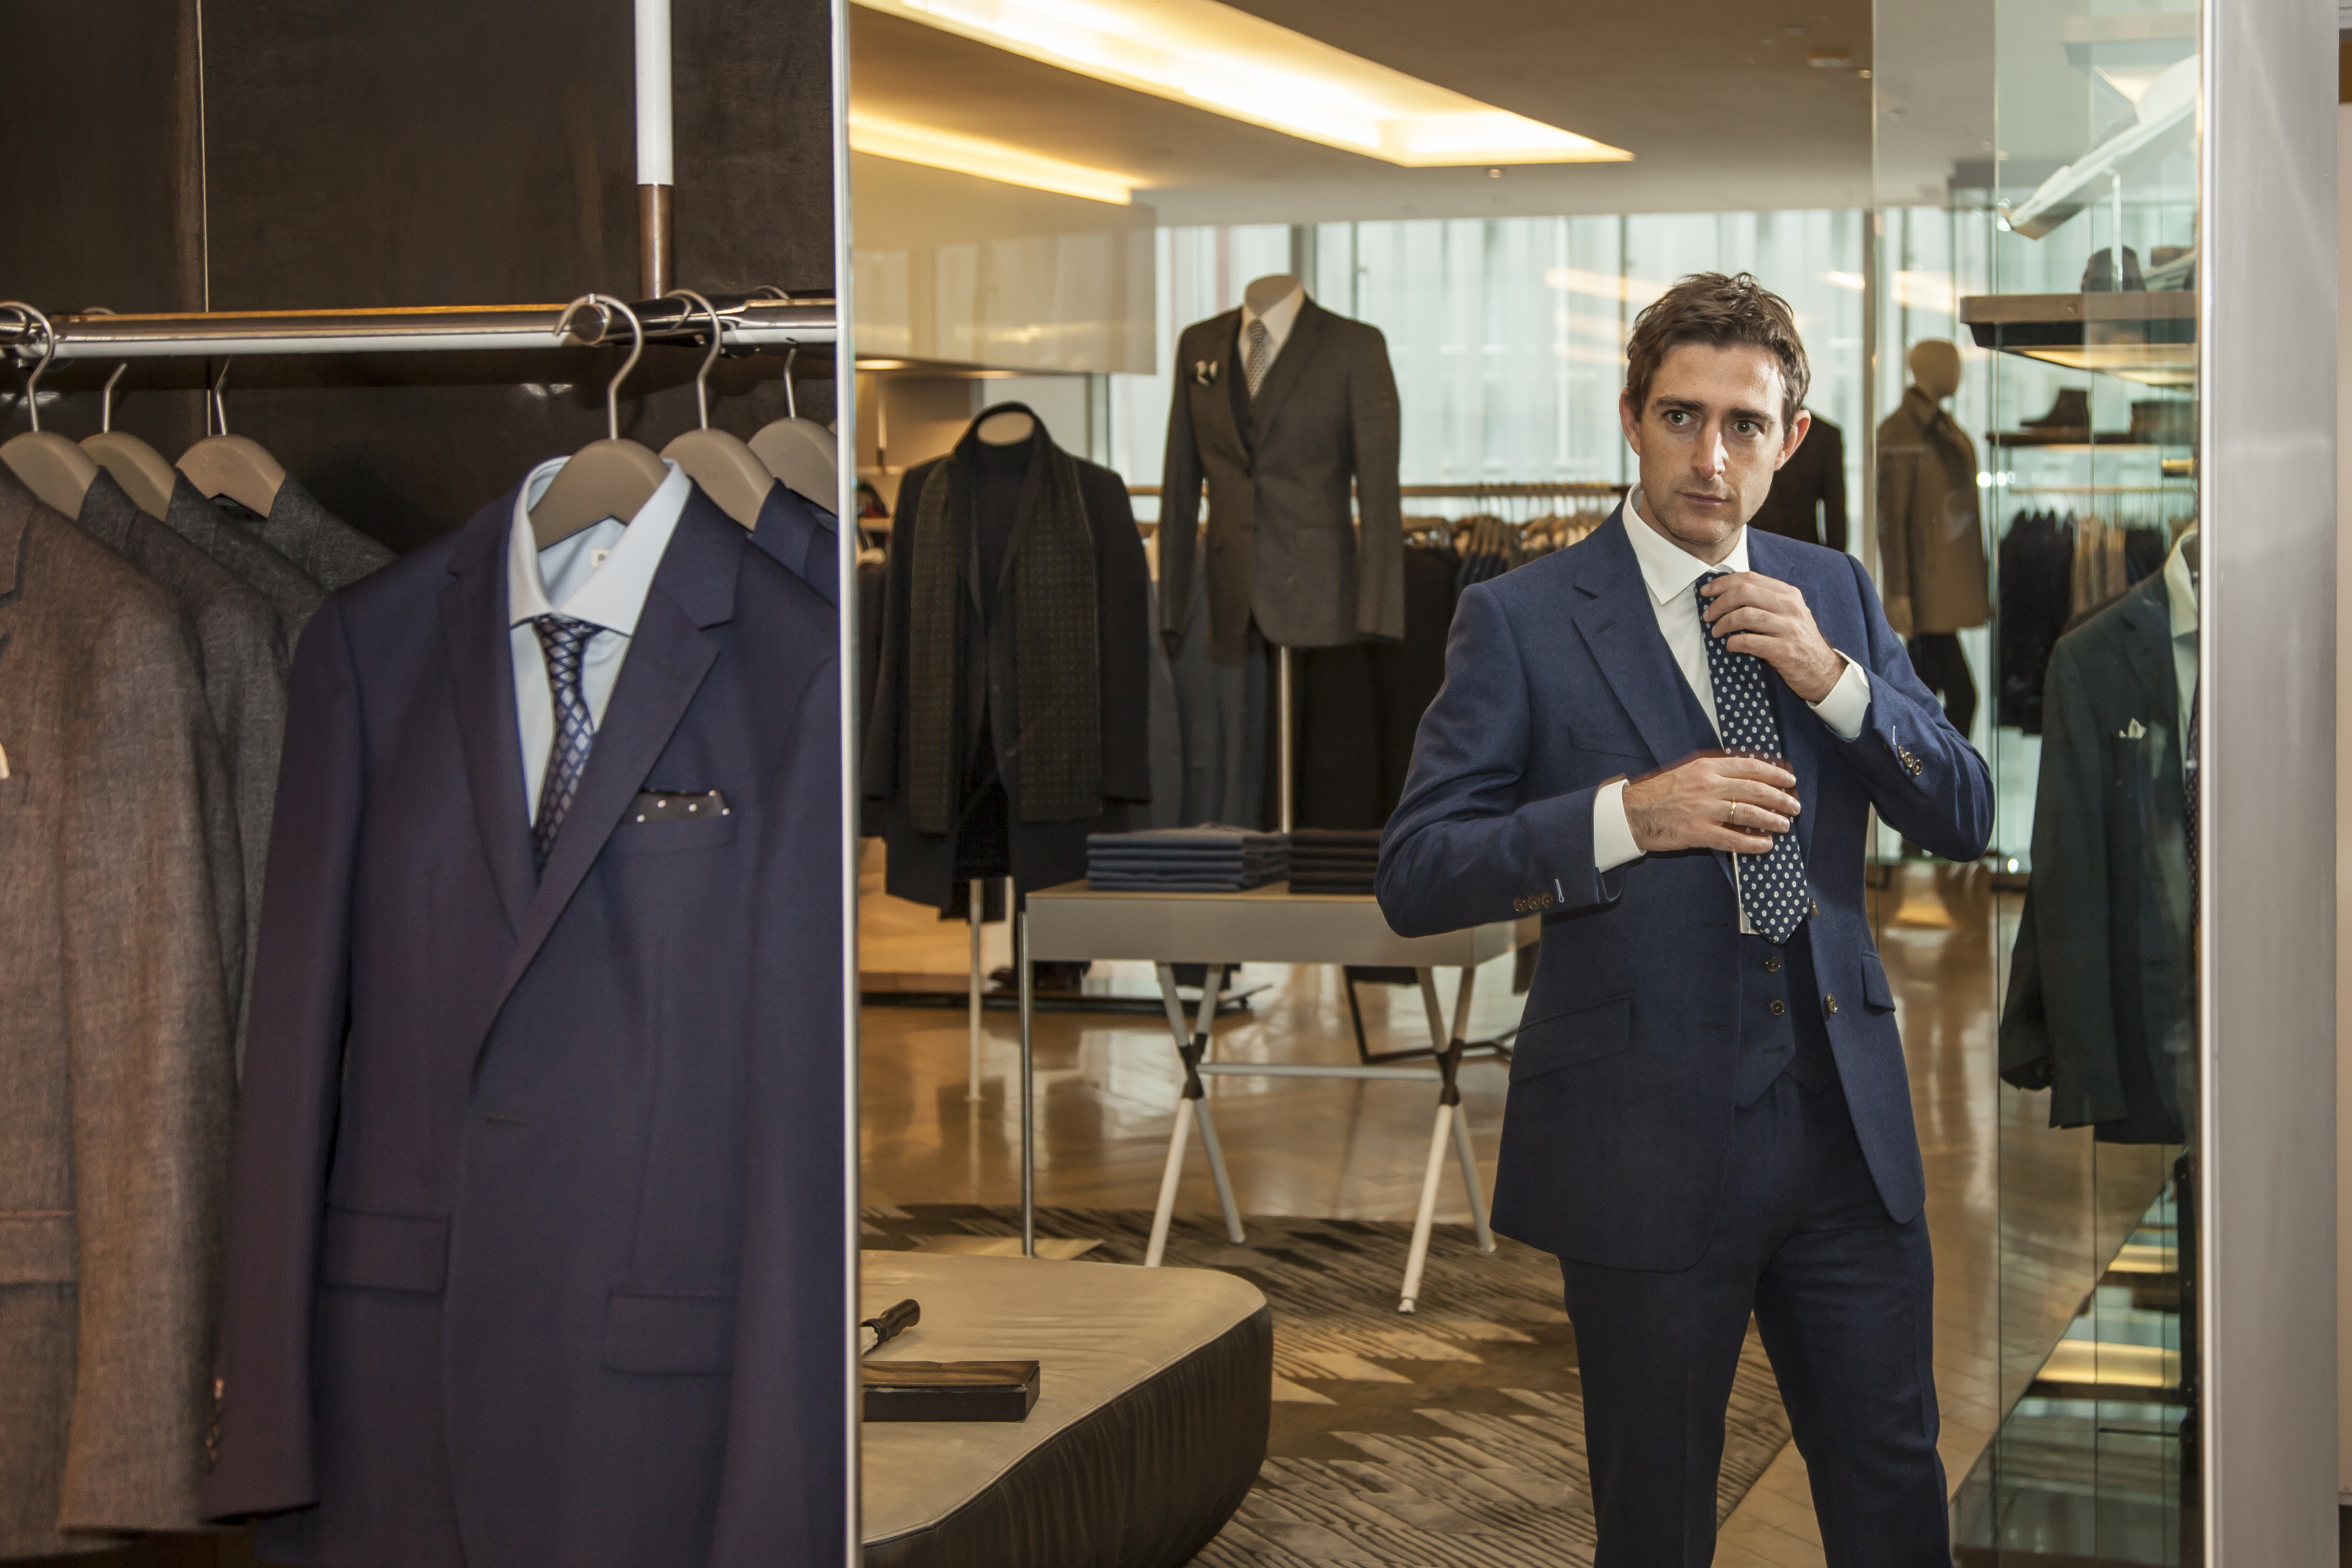 Kingsmen Shop traces its heritage back to , when it was then known as Great Central Modern Tailor. The Kingsmen name was adopted in the early s and we have since become synonymous as the purveyor of leading menswear.